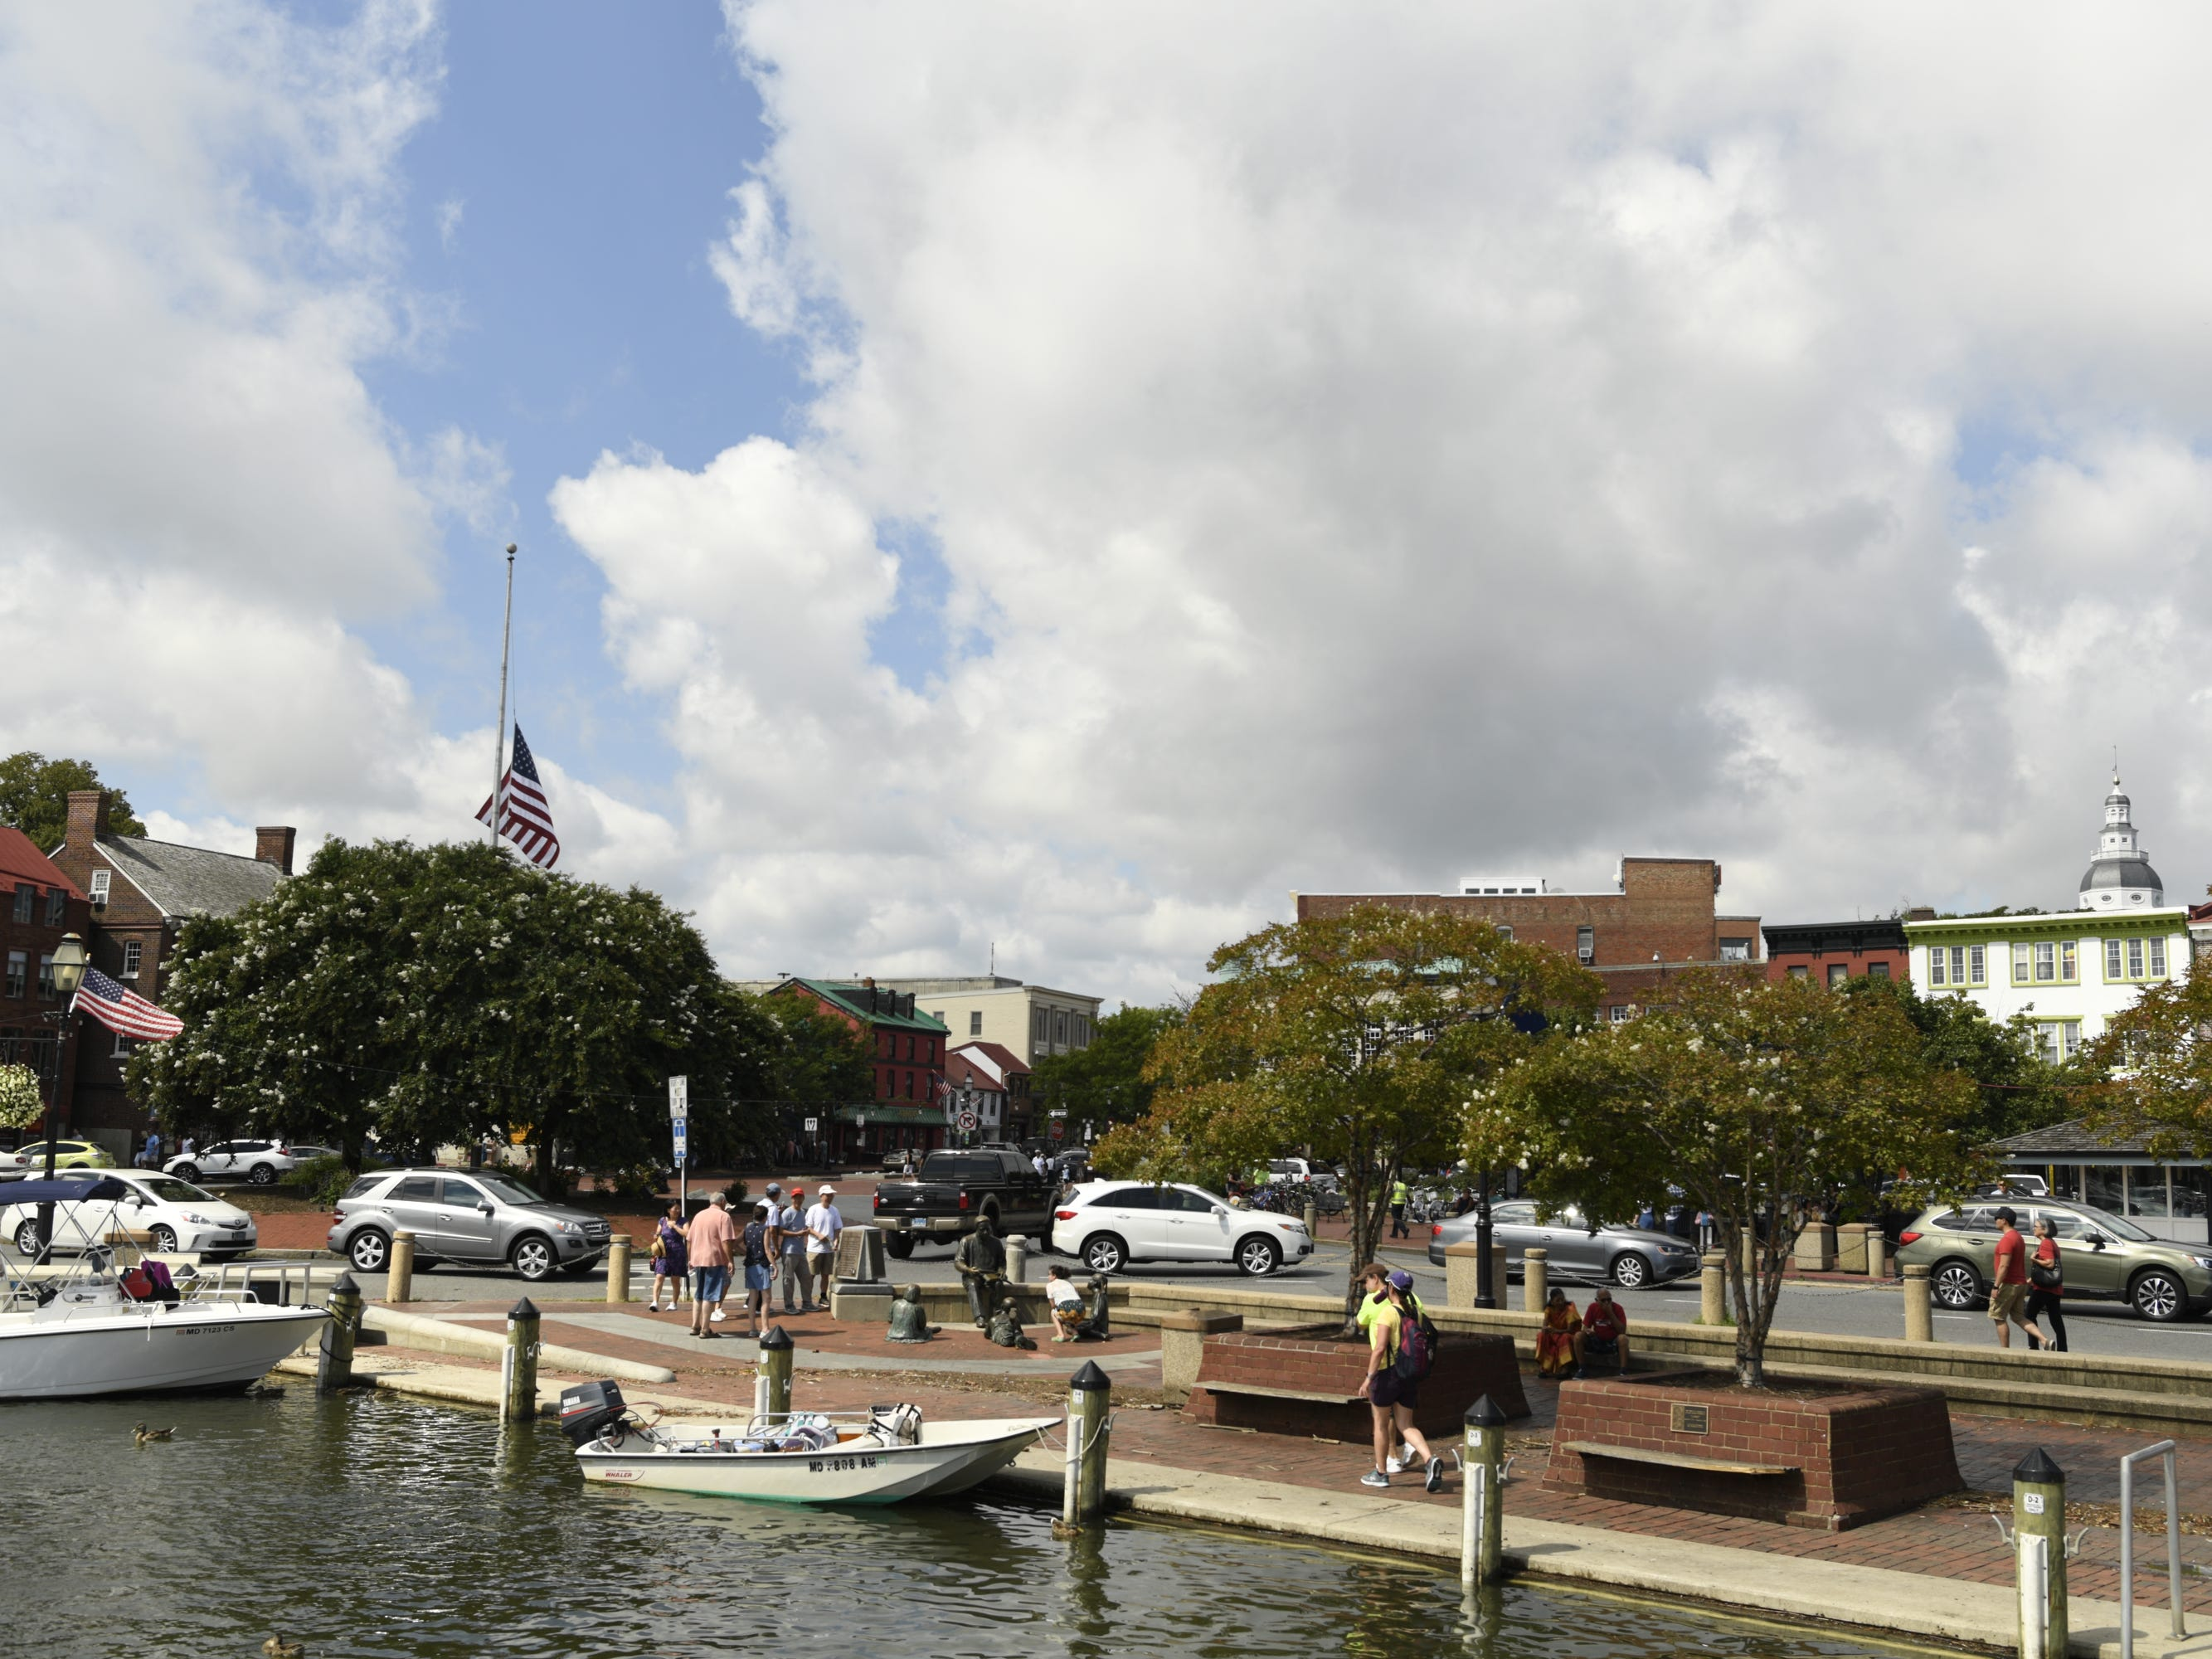 The U.S. flag flies at half staff in Annapolis harbor the morning that John McCain is to be laid to rest at the U.S. Naval Academy.